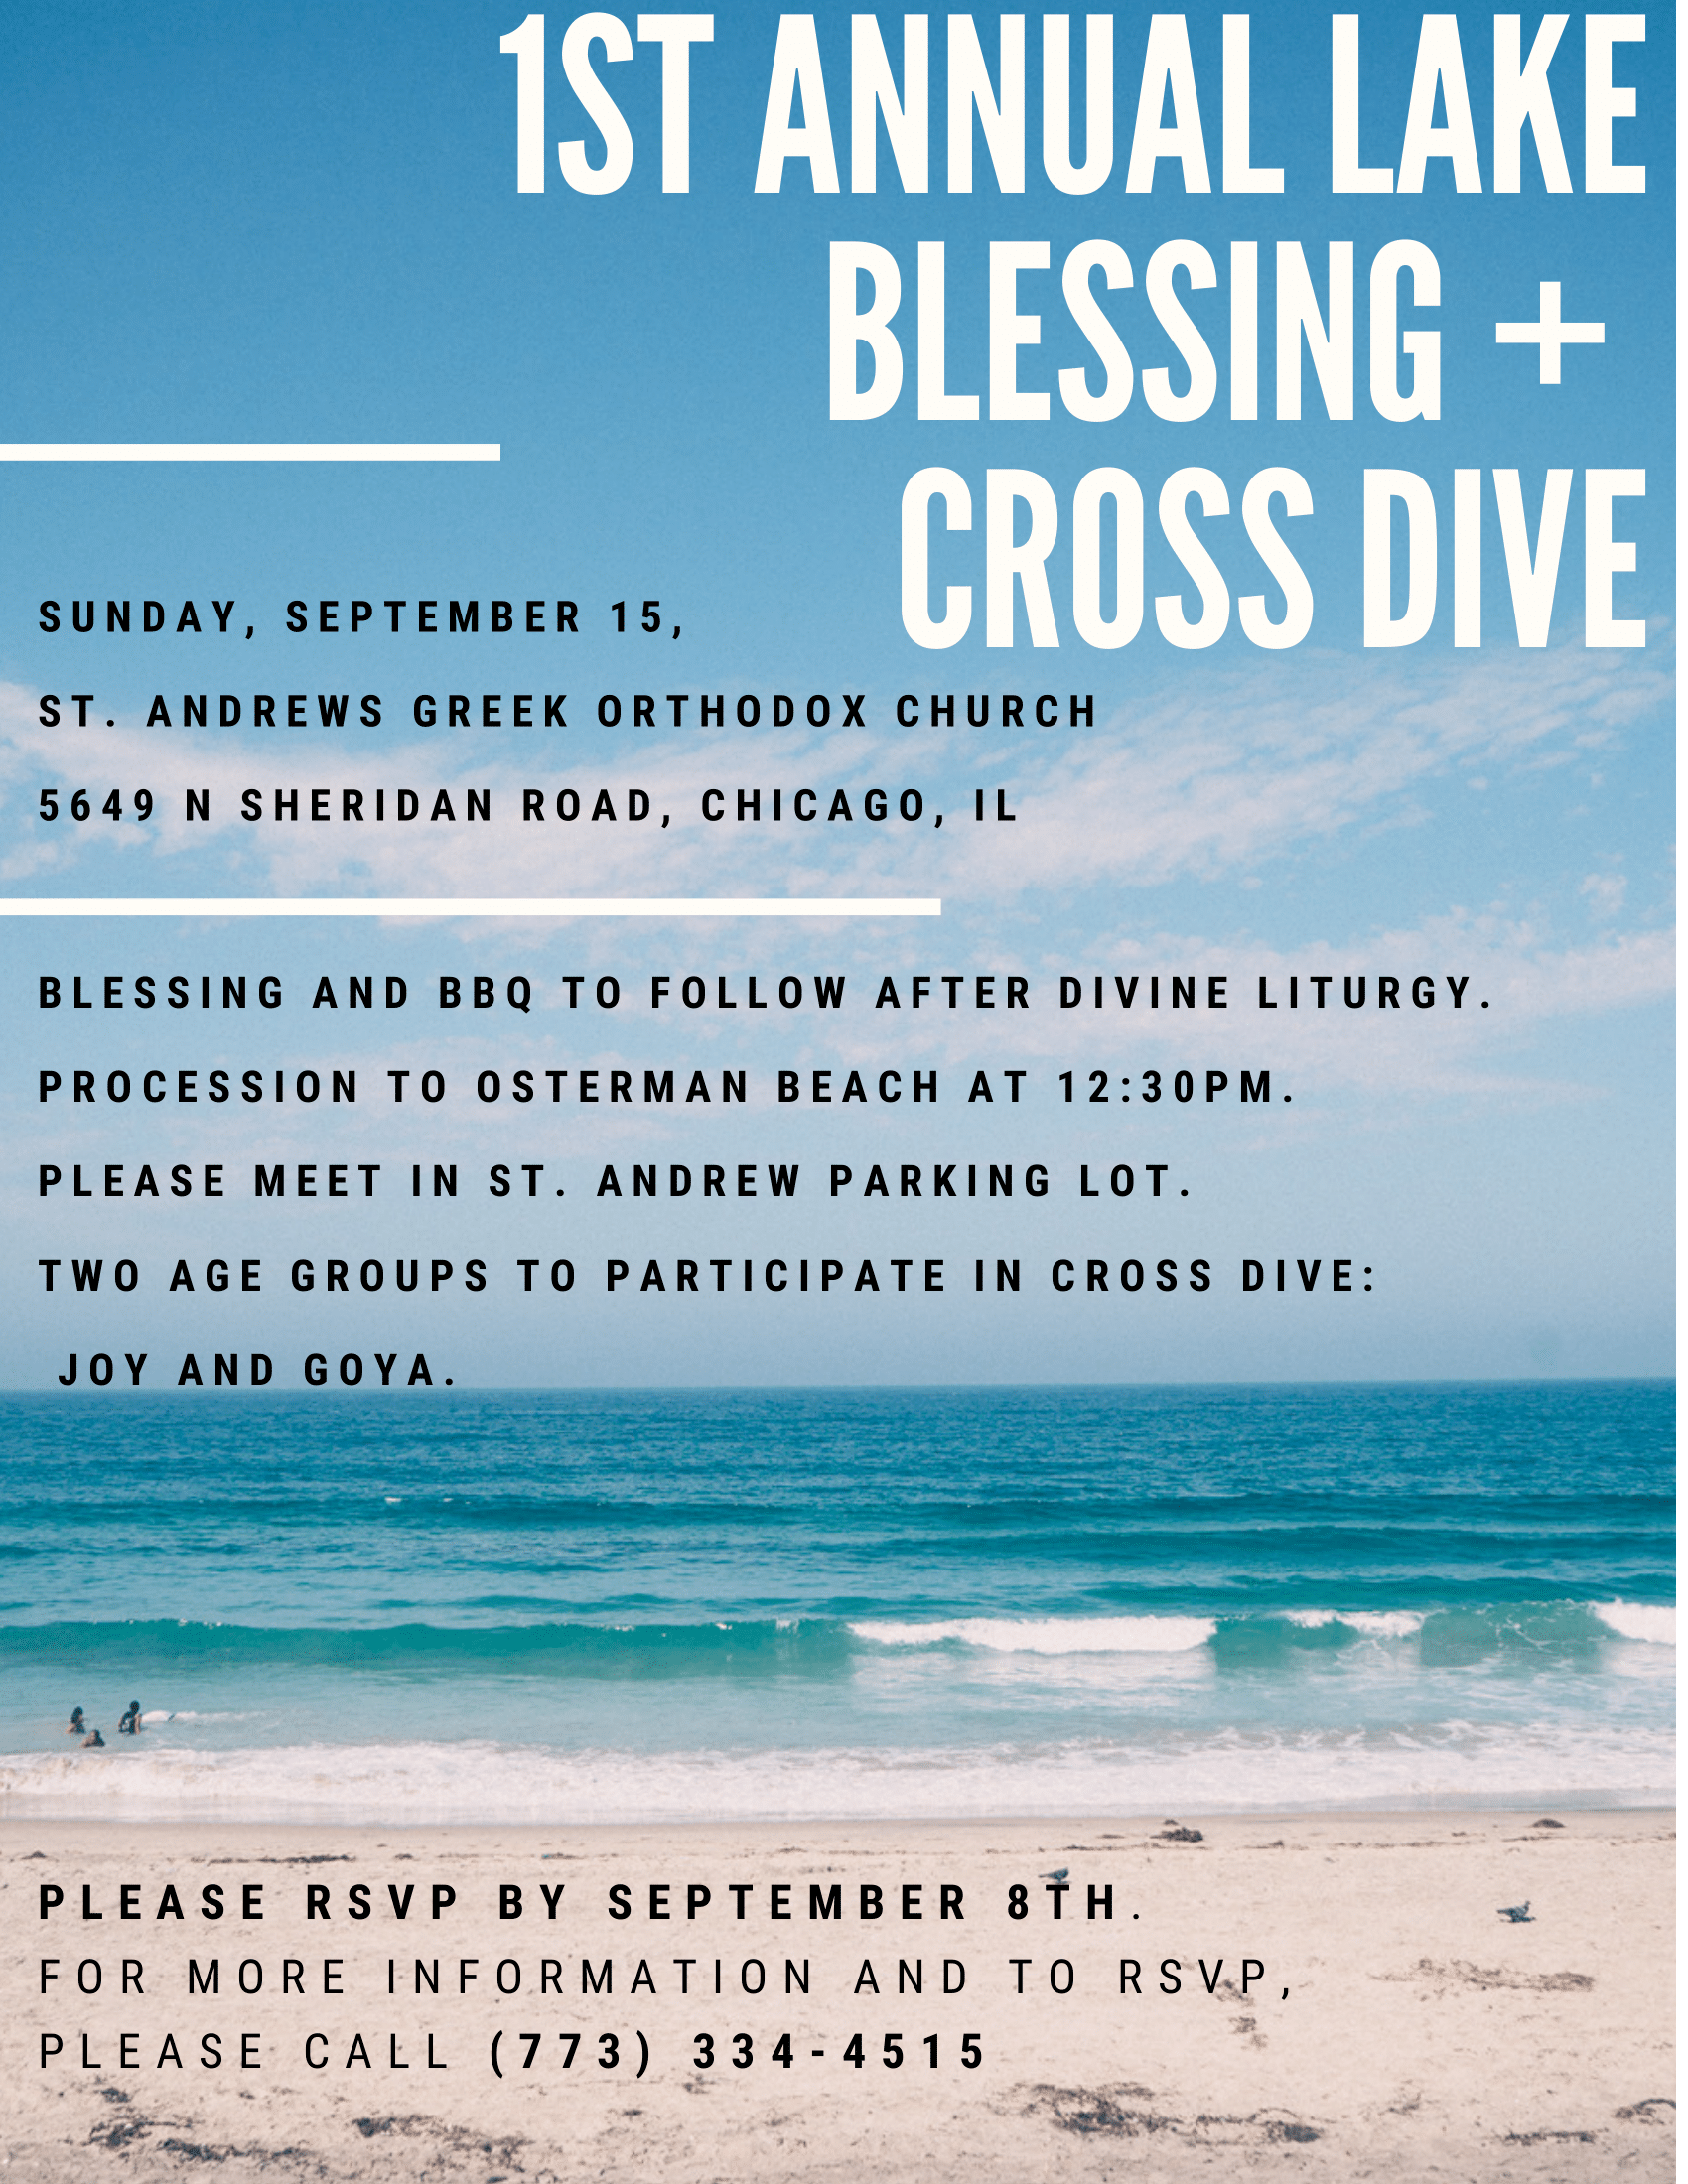 Lake Blessing and Cross Dive